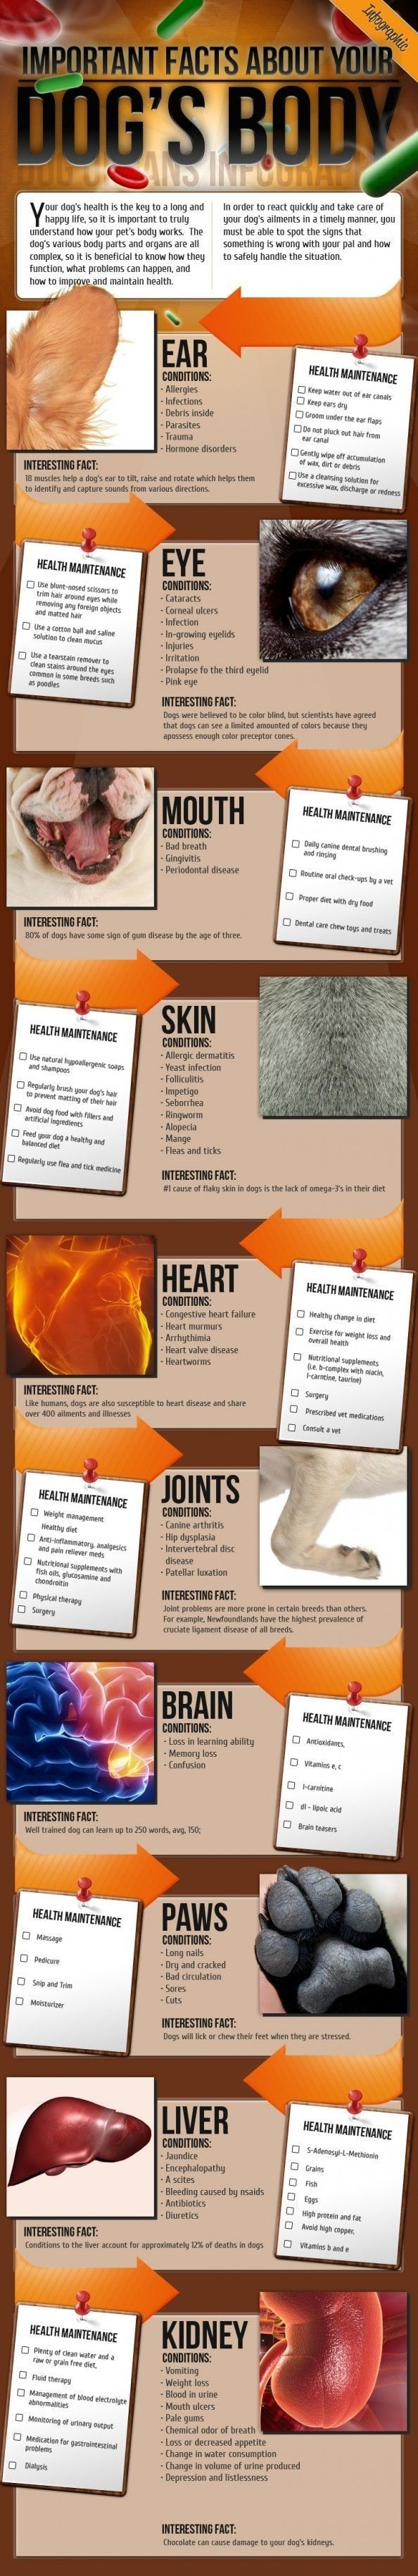 Important Facts about your Dog's Body Infographic: I love a great infographic for nonfiction literacy skills. This text is challenging but could be great for citing text evidence. by LiveLoveLaughMyLife